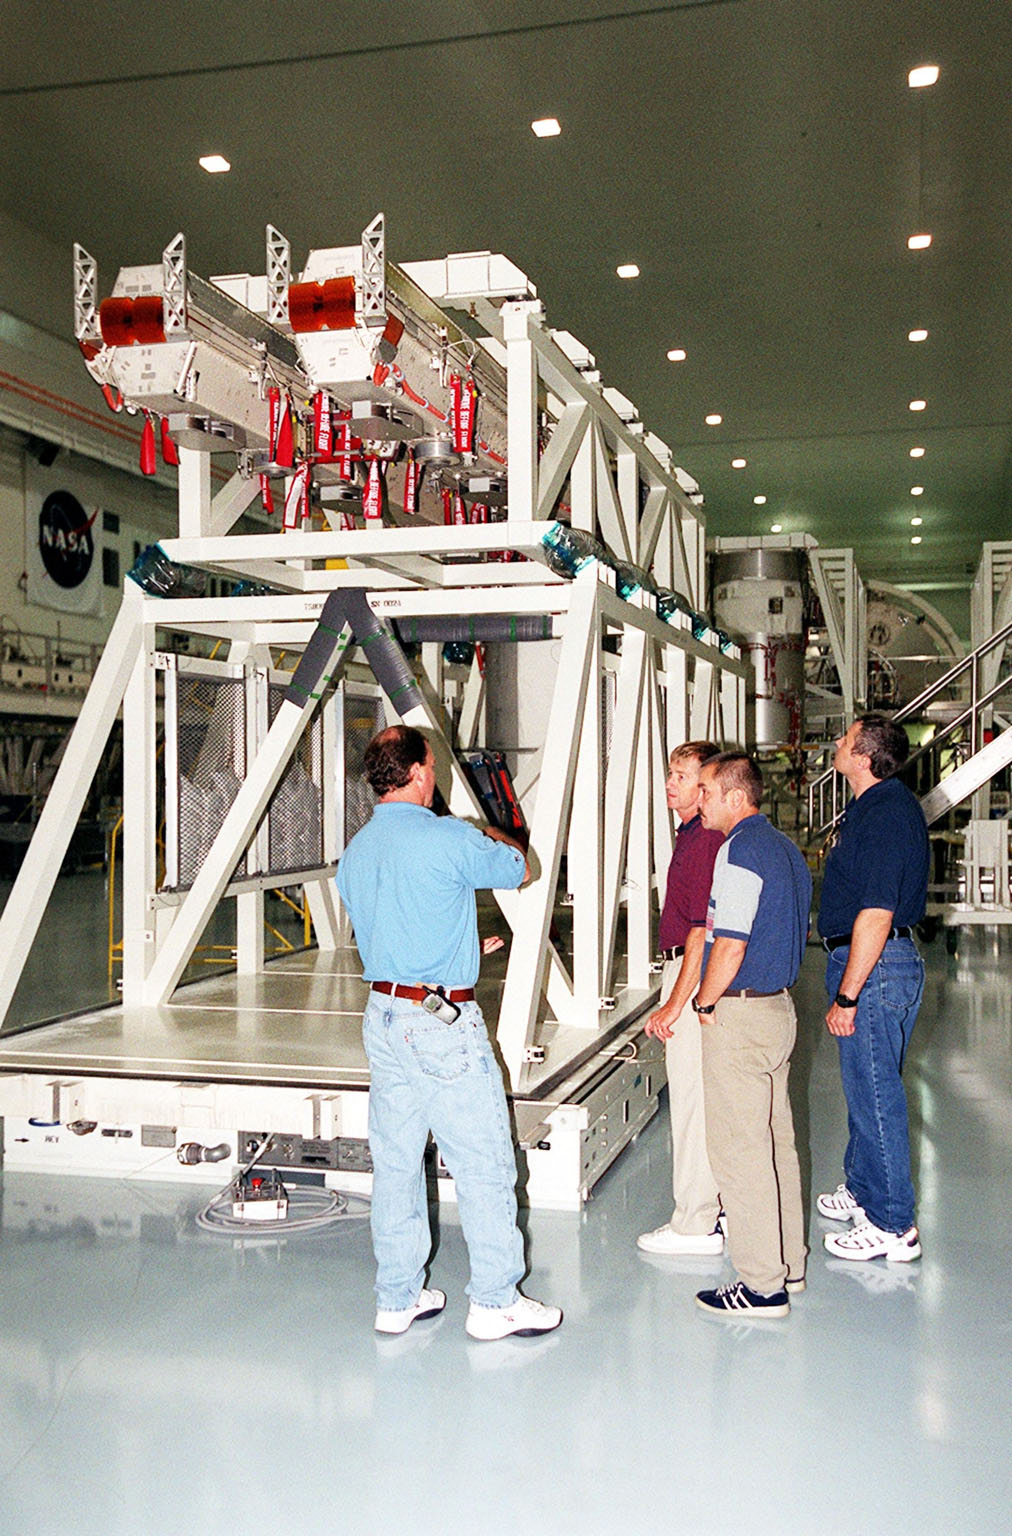 KENNEDY SPACE CENTER, Fla. -- In the Space Station Processing Facility, the Expedition Three crew (right) listen to a worker discuss solar panels seen here on a workstand. The crew members are (left to right) Commander Frank Culbertson and cosmonauts Mikhail Tyurin and Vladimir Dezhurov. The STS-105 payload includes the Early Ammonia Servicer (EAS), Multi-Purpose Logistics Module Leonardo and various experiments attached on the port and starboard adapter beams. The EAS contains spare ammonia for the Station?s cooling system. Ammonia is the fluid used in the radiators that cool the Station?s electronics. The EAS will be installed on the P6 truss holding the giant U.S. solar arrays, batteries and cooling radiators. Leonardo is filled with laboratory racks of science equipment and racks and platforms of experiments and supplies. Discovery is scheduled to be launched Aug. 9, 2001